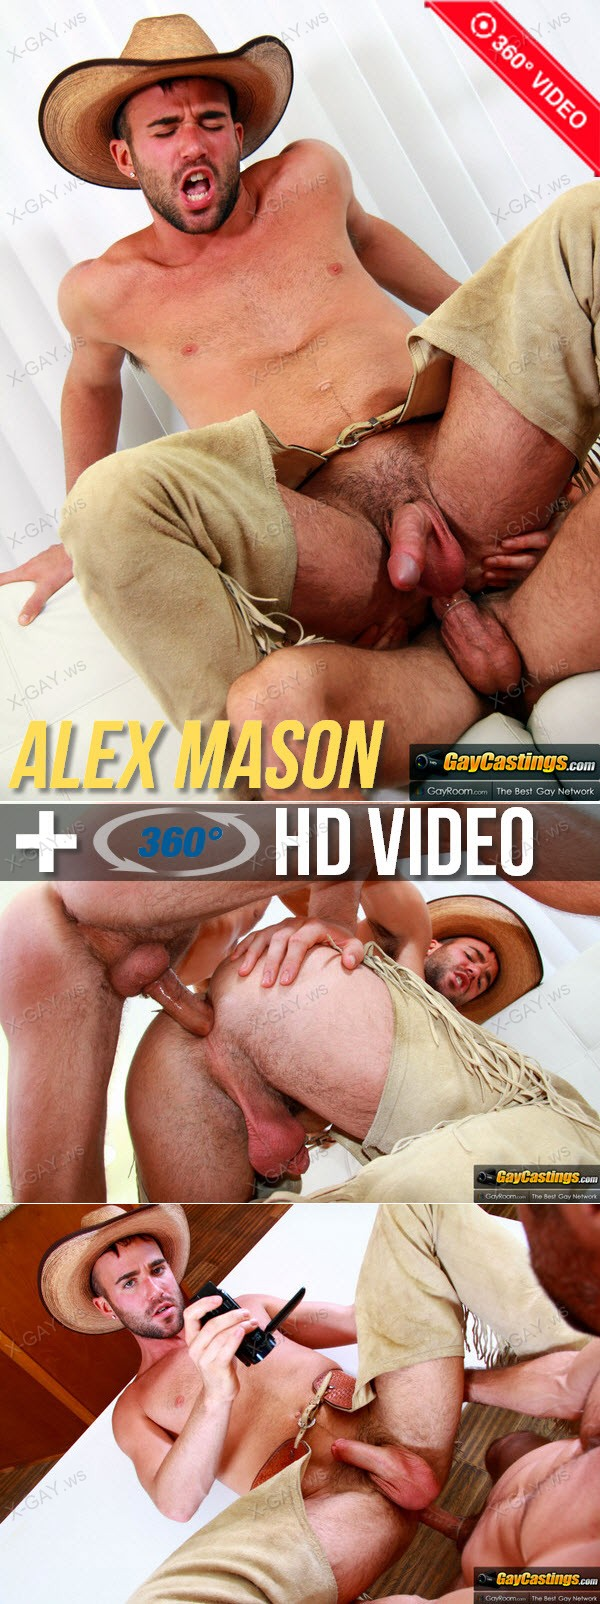 GayCastings: Alex Mason (360° Video FHD)